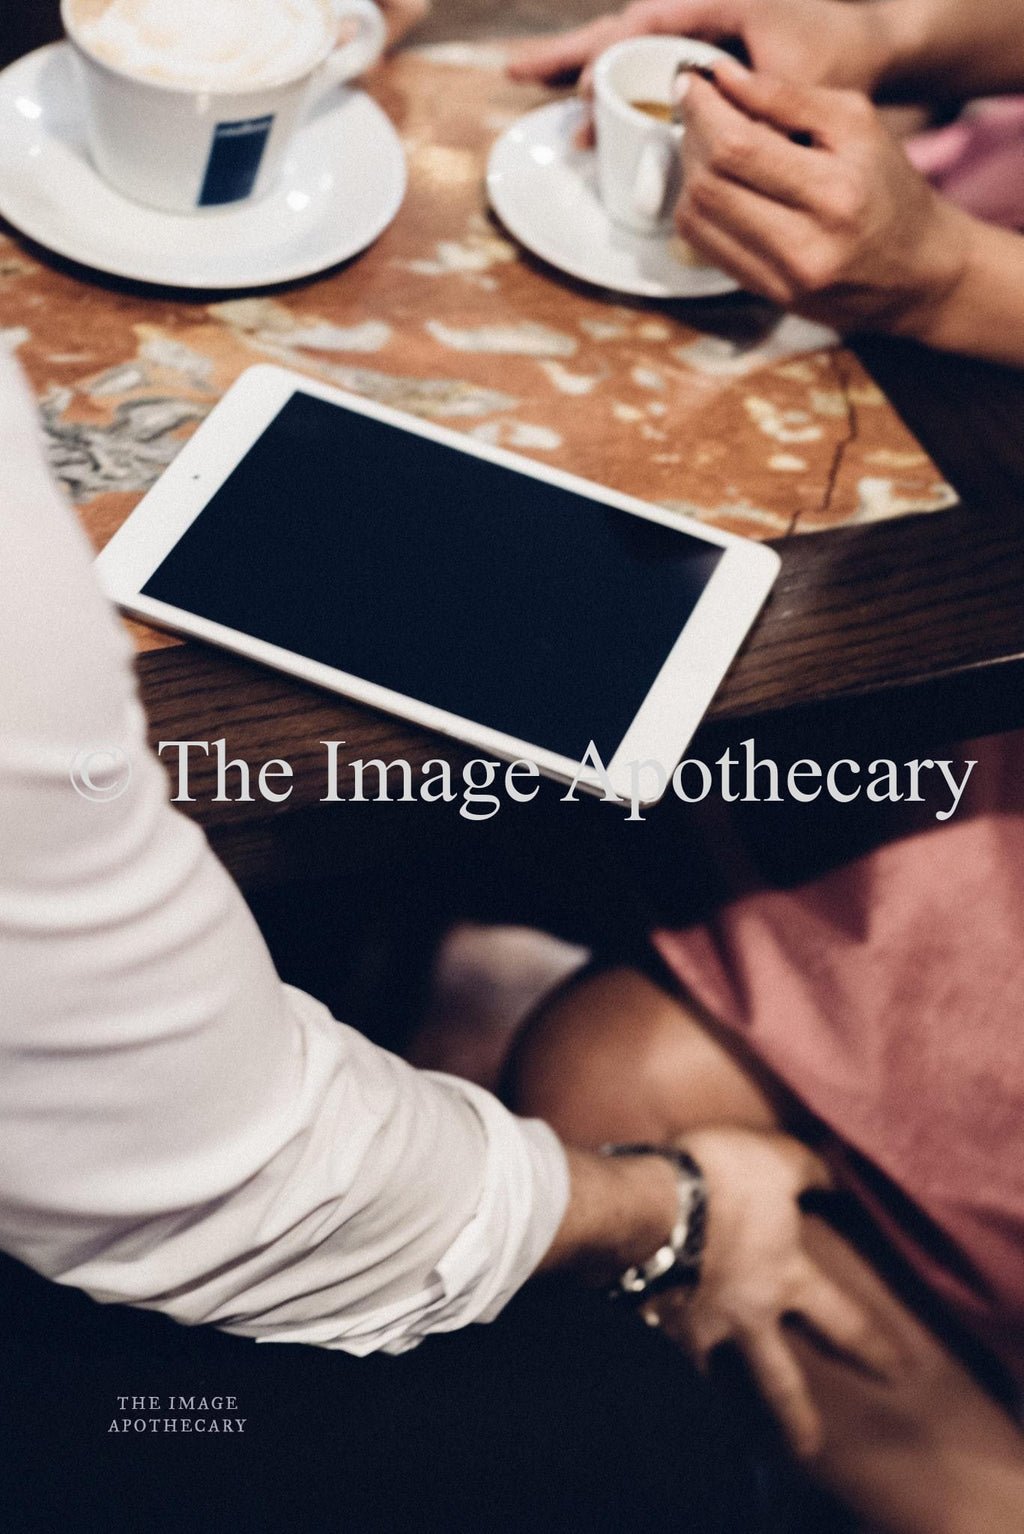 TheImageApothecary-302 - Stock Photography by The Image Apothecary